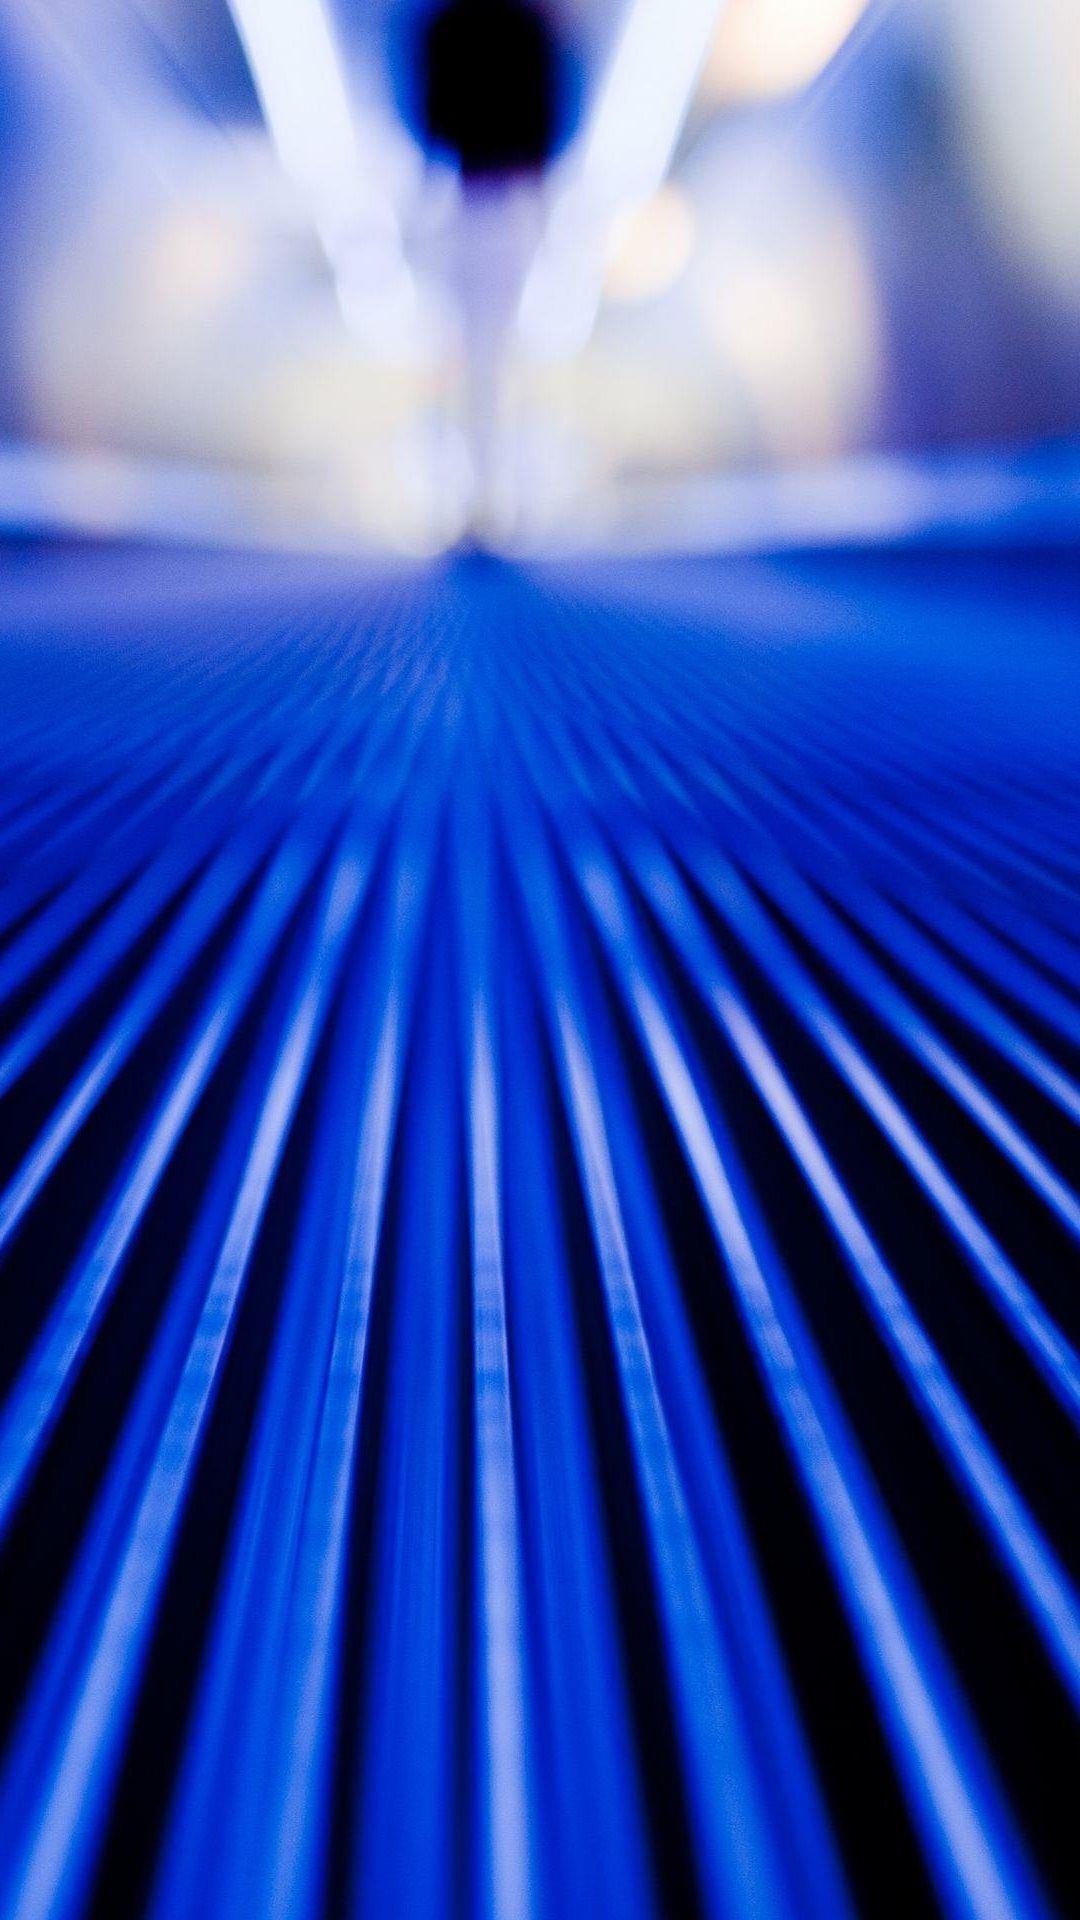 Moving Walkway Blue Stripes Close Up IPhone 6 Plus HD Wallpaper